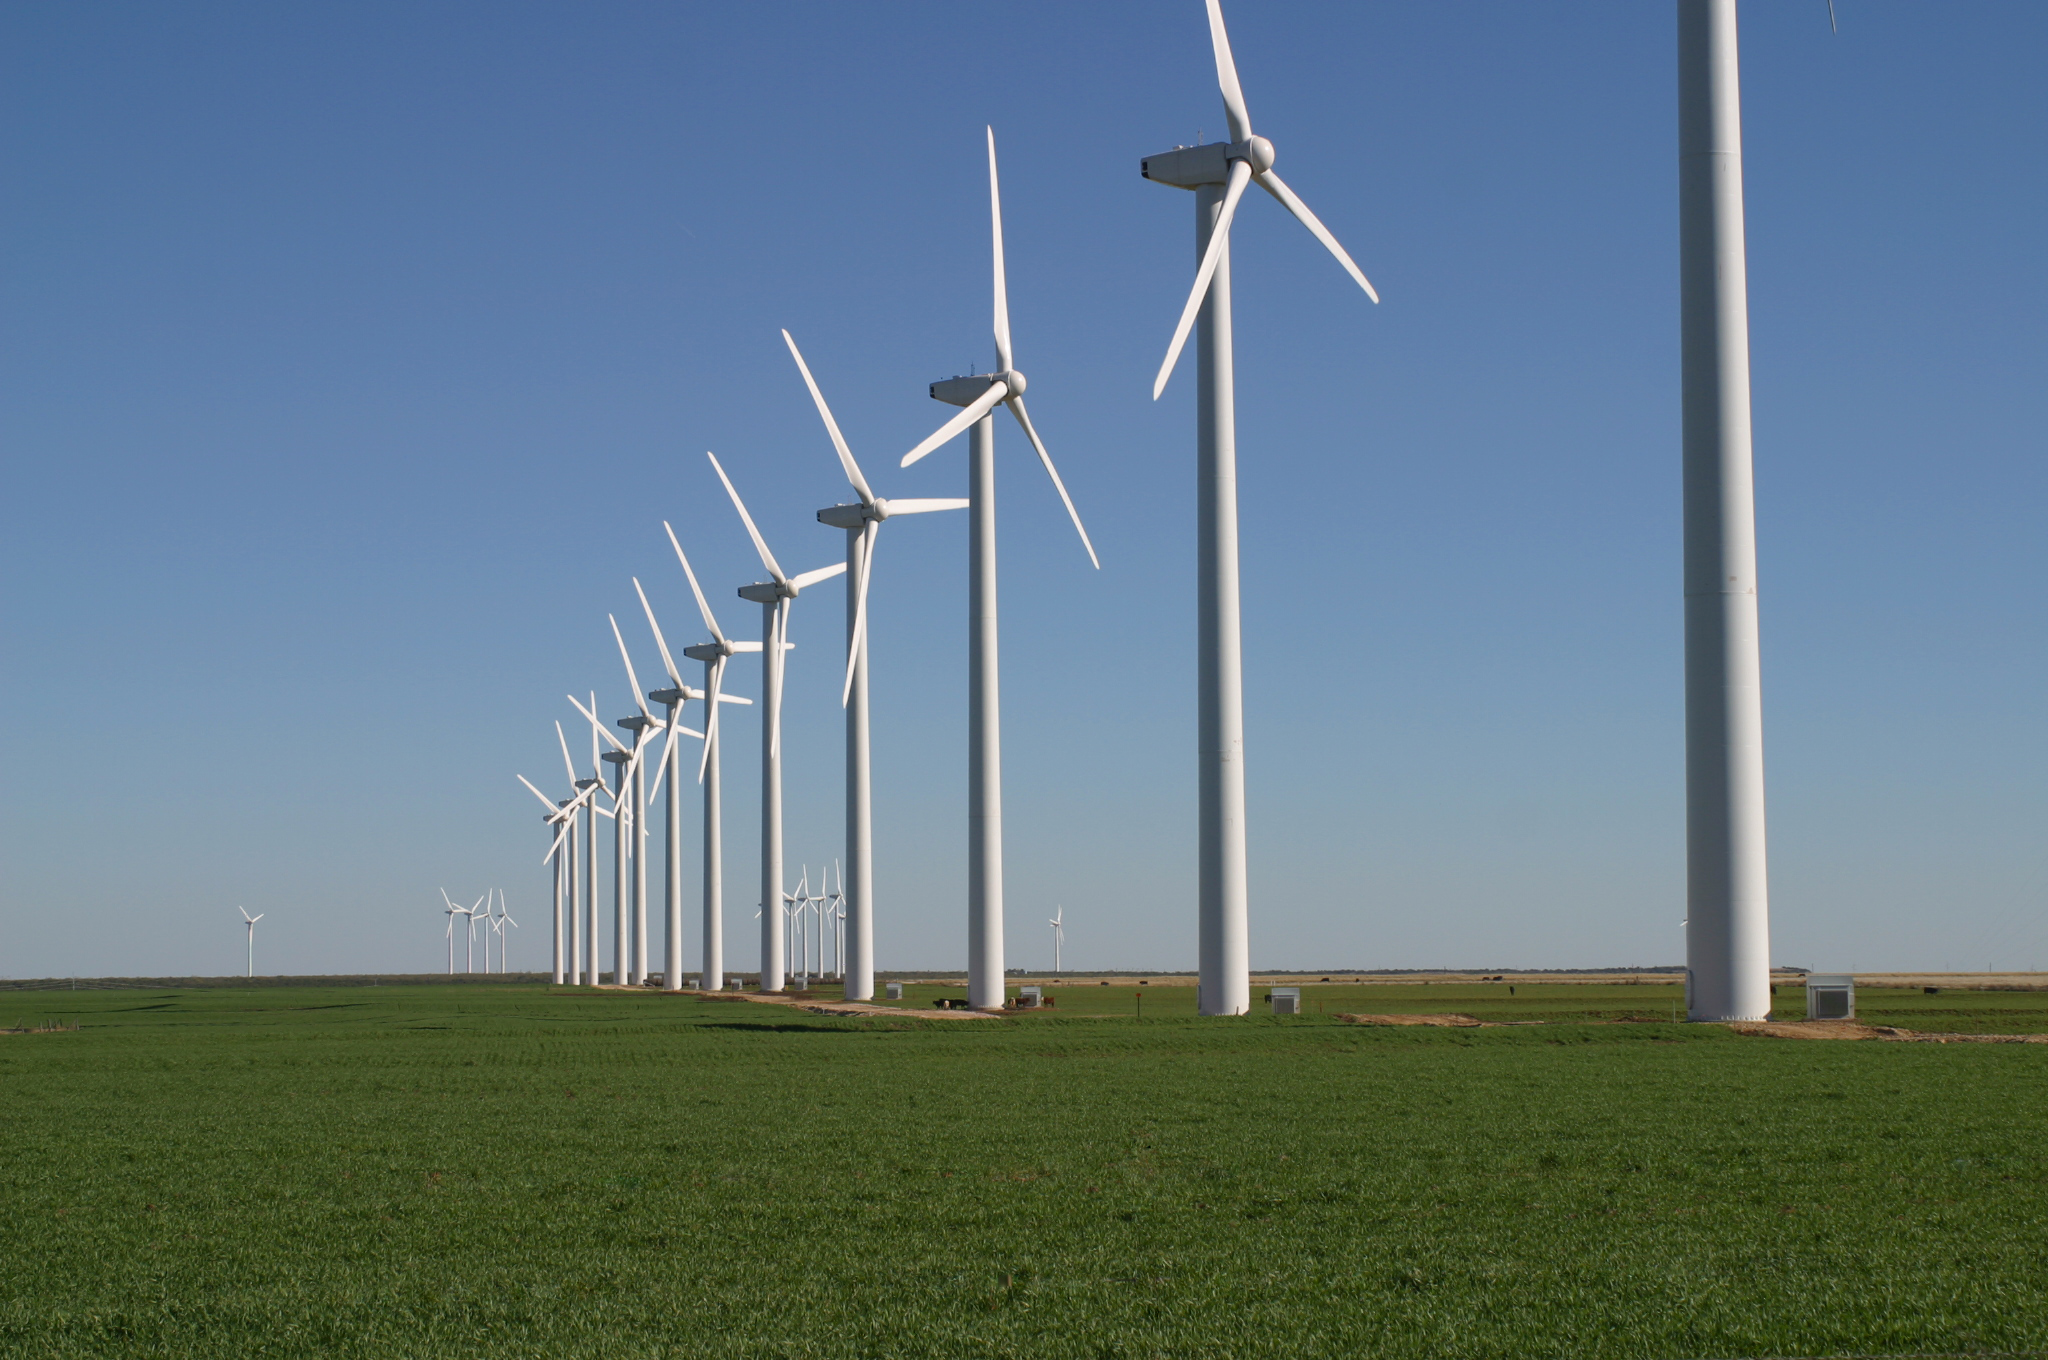 Image/ Green Mountain Wind Farm